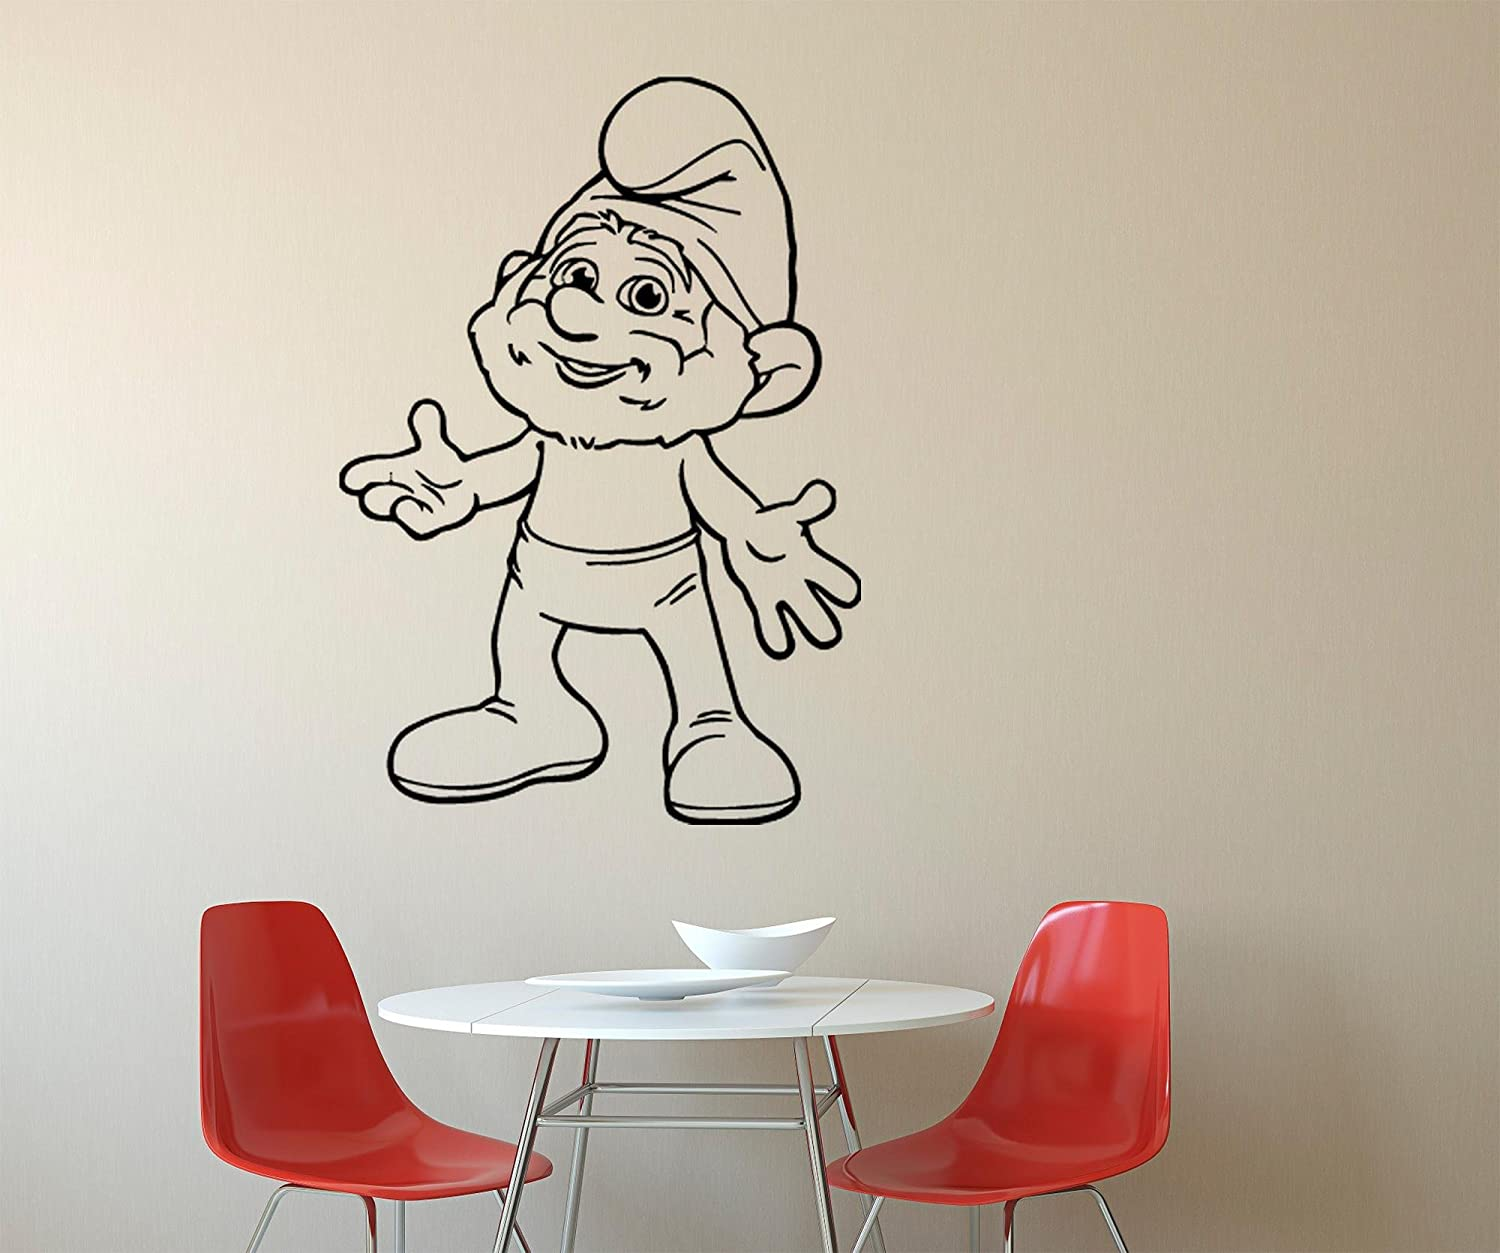 Amazon com cartoon wall decals decor vinyl stickers gmo7358 home kitchen